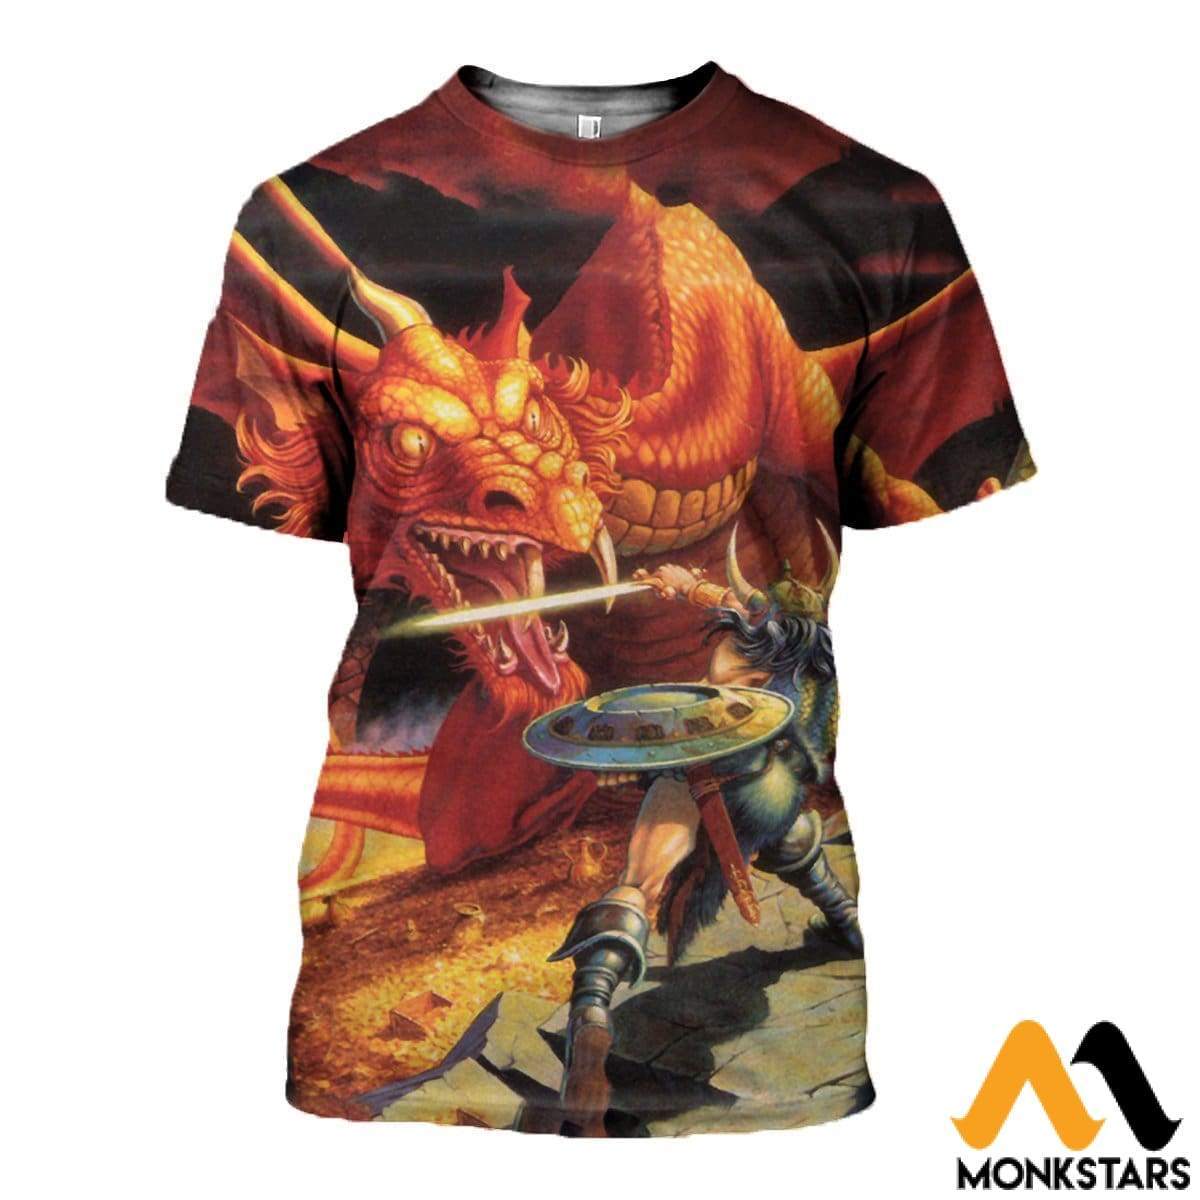 3D All Over Printed D&d Clothes T-Shirt / Xs